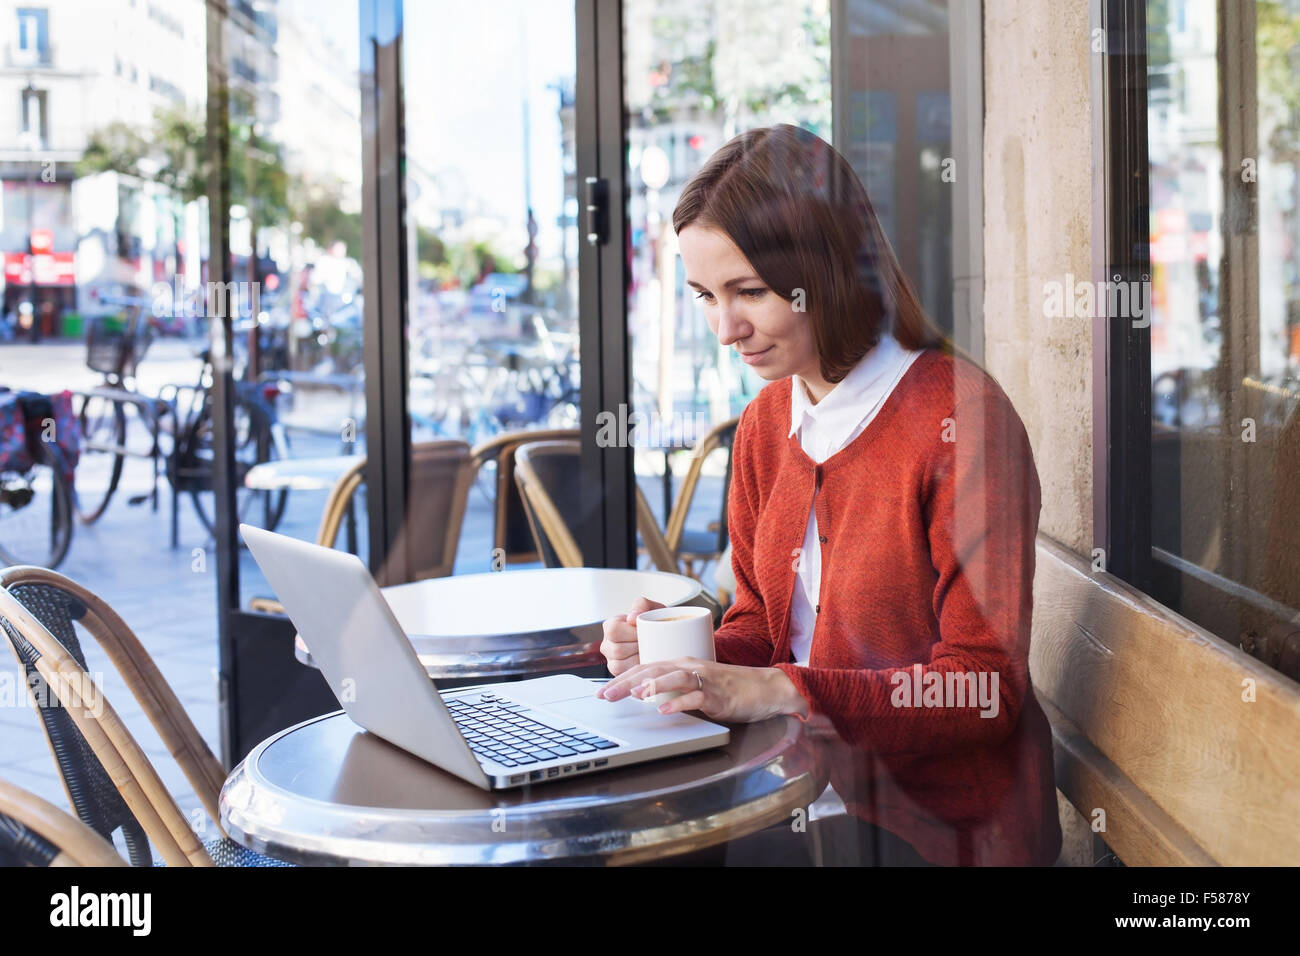 young woman working with laptop in cafe - Stock Image